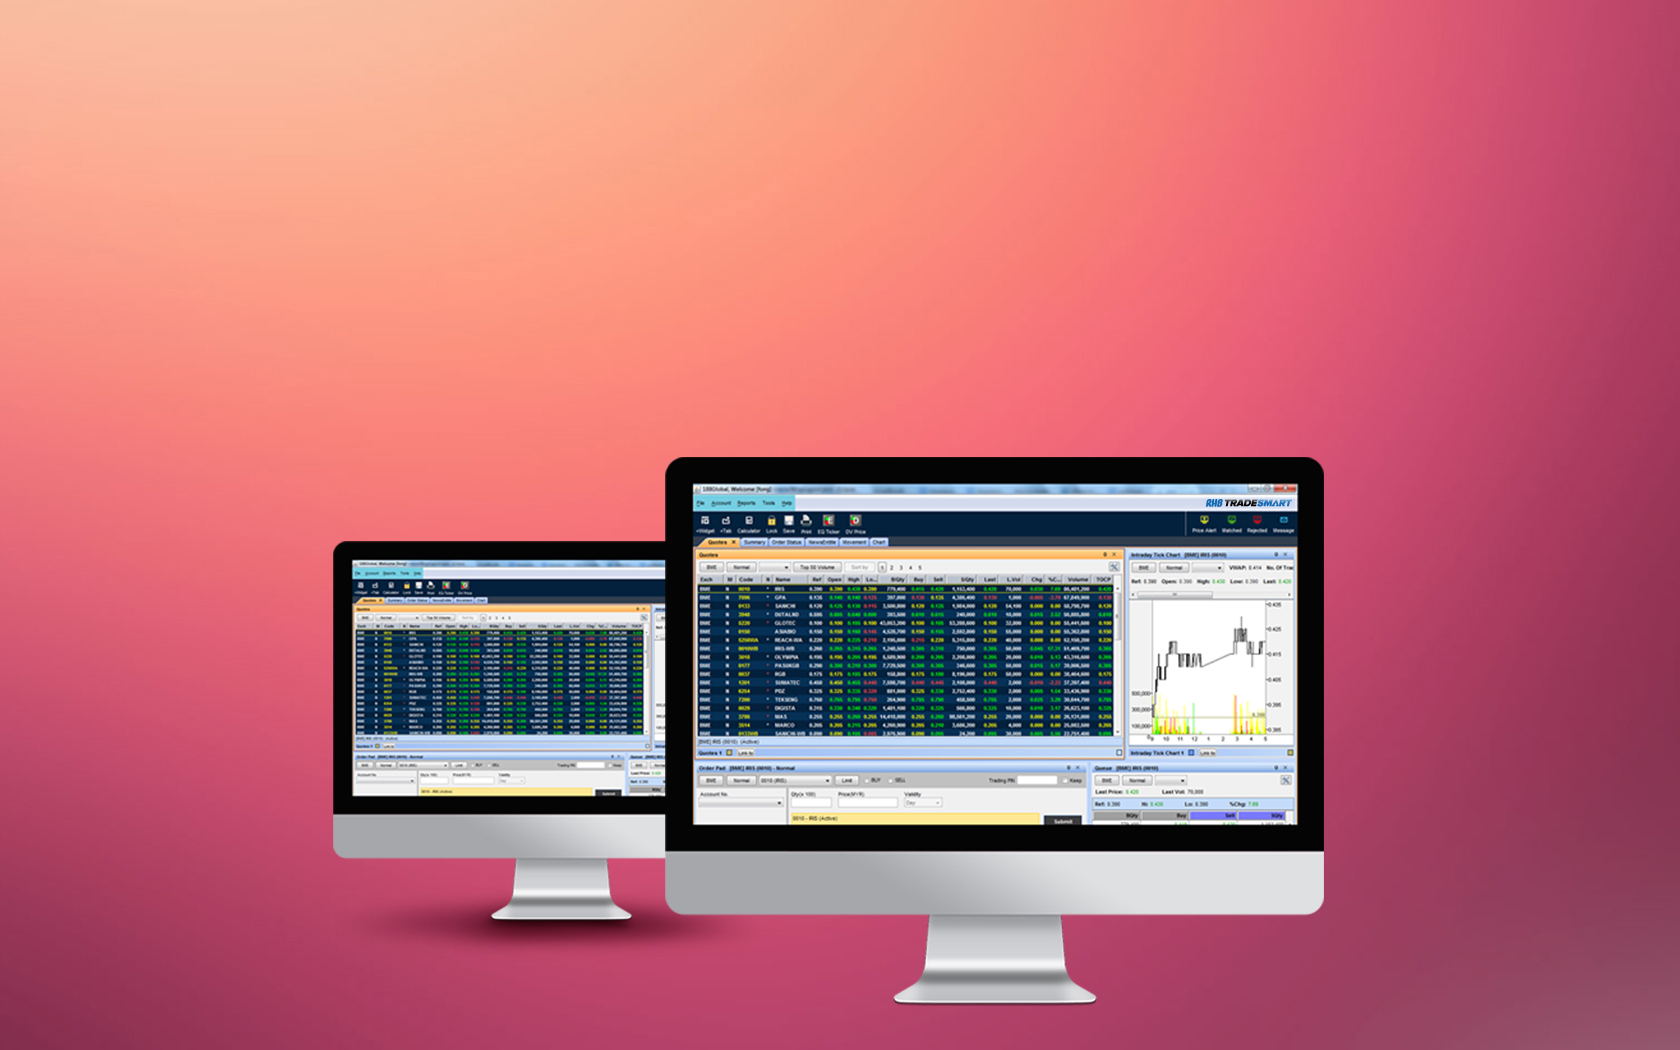 RHB TradeSmart: Online trading application for expert traders